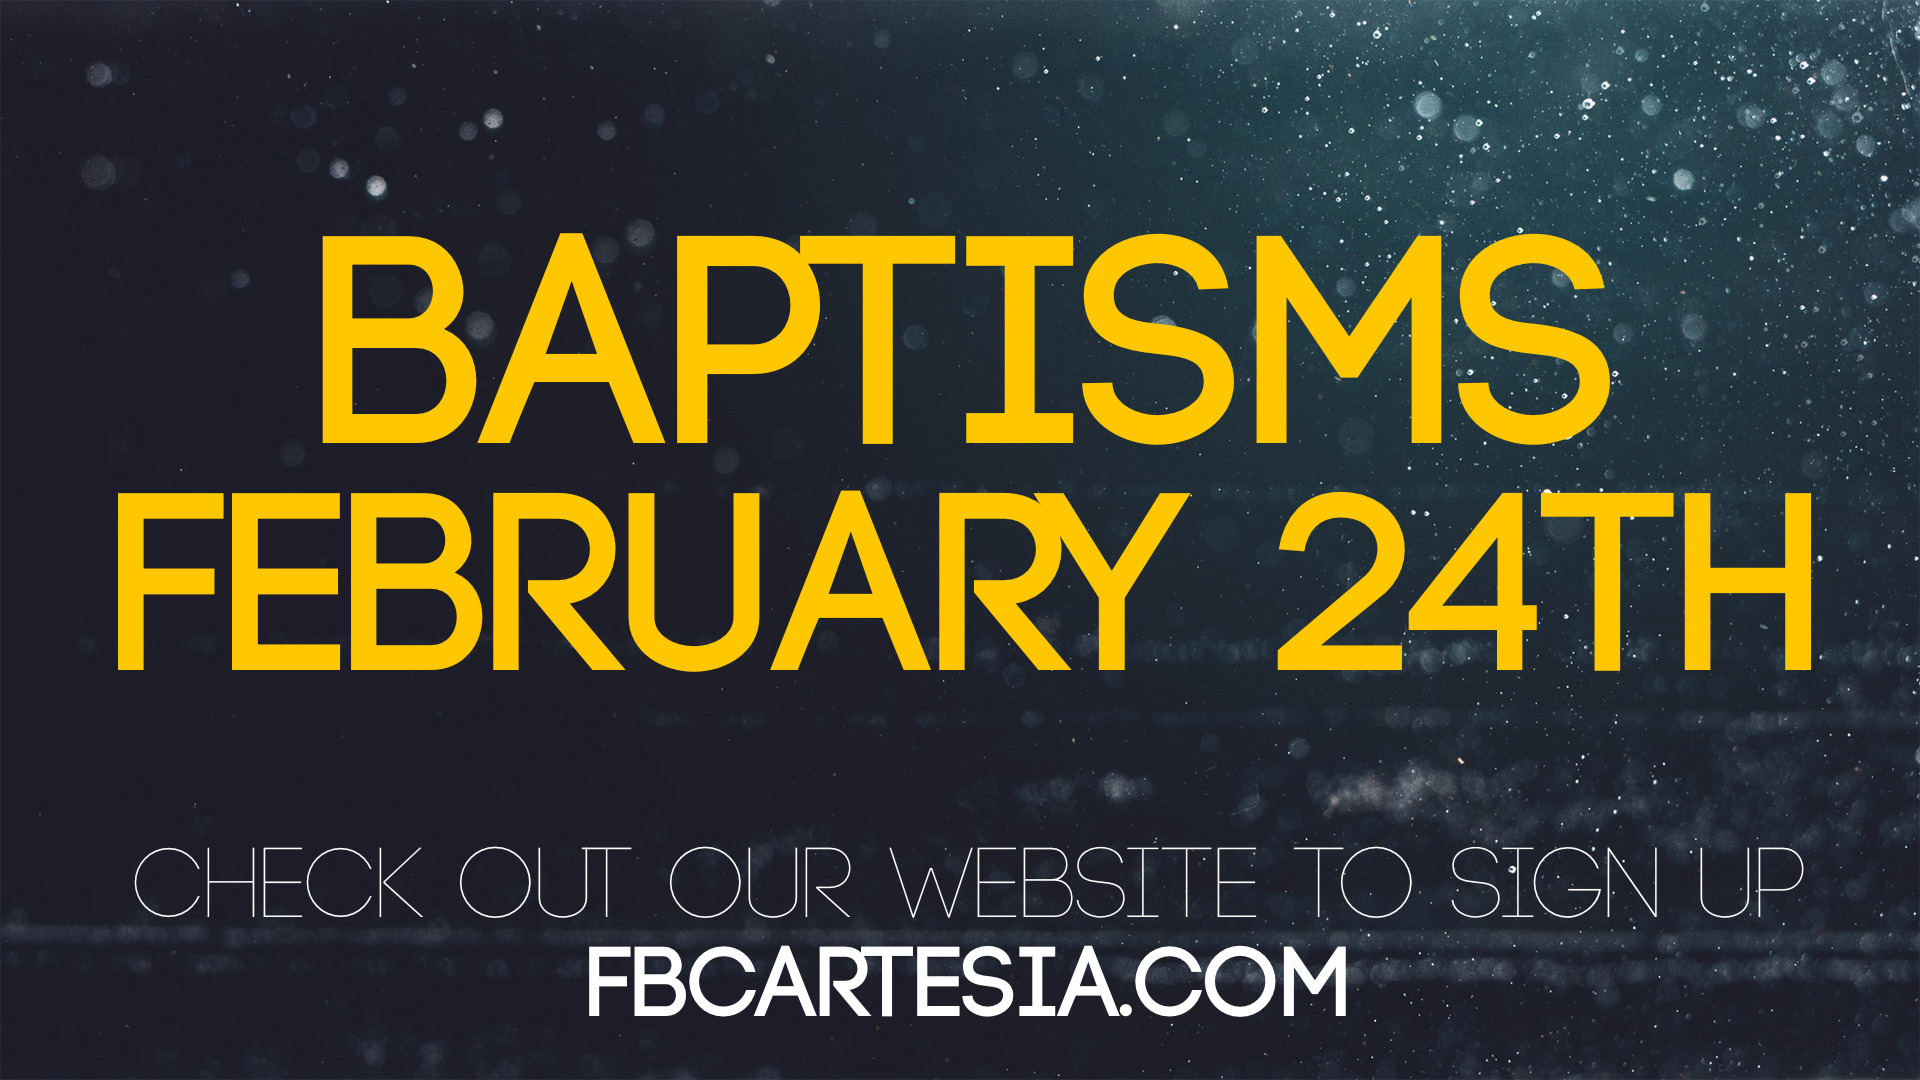 baptism_sunday-background-Wide 16x9 copy.jpg